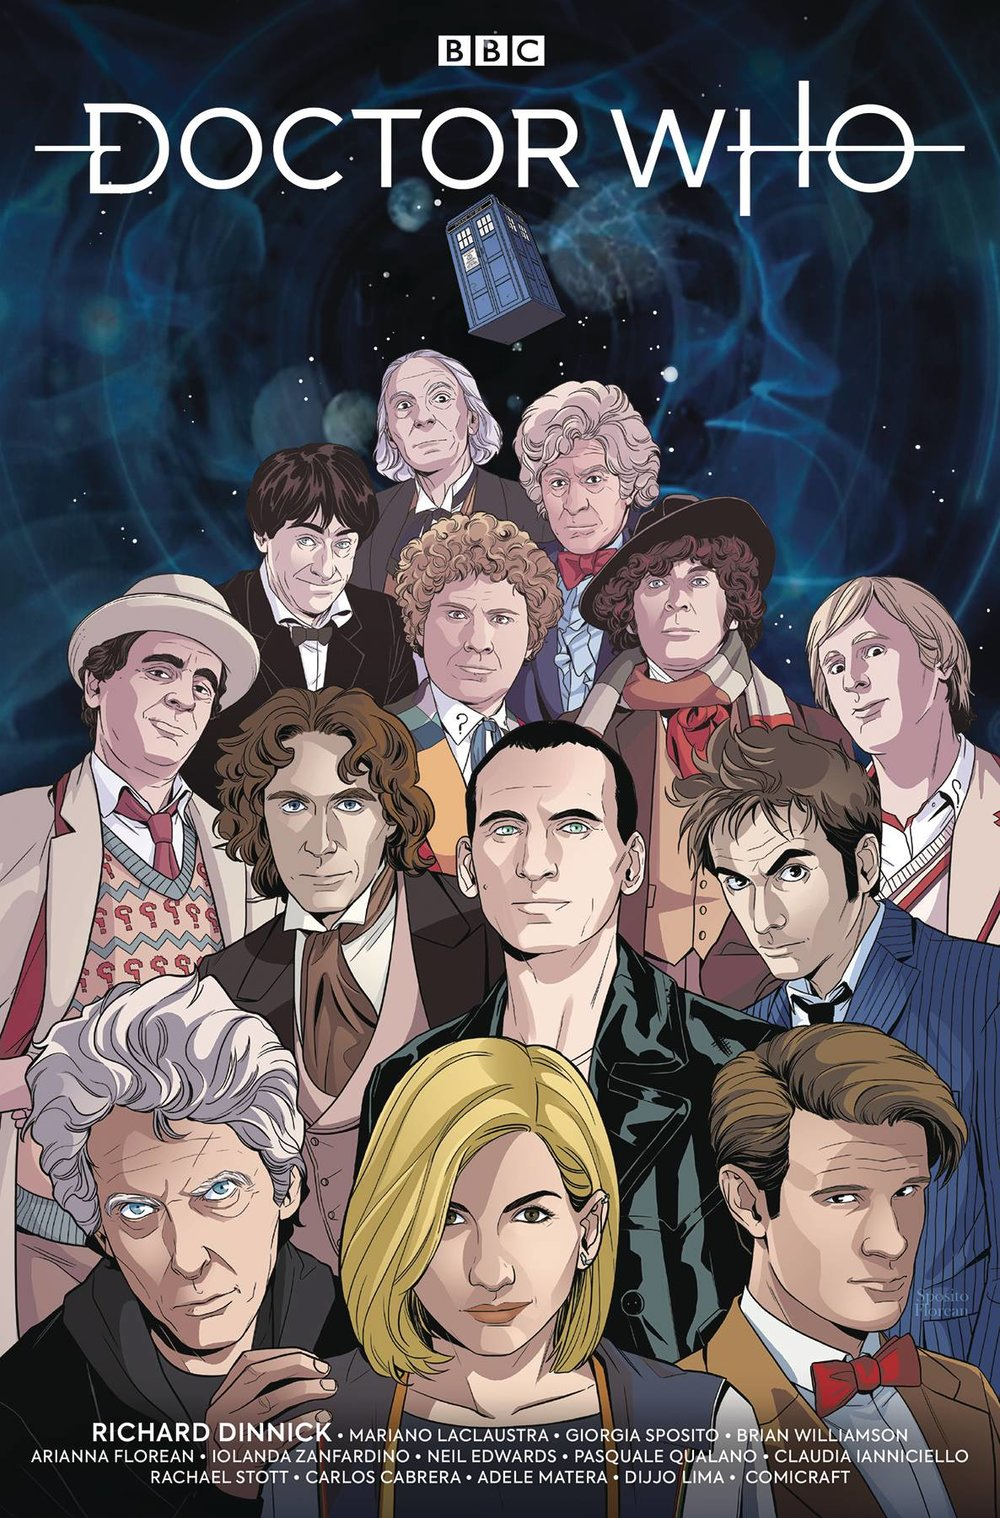 DOCTOR WHO 13TH NYCC EXC CVR.jpg